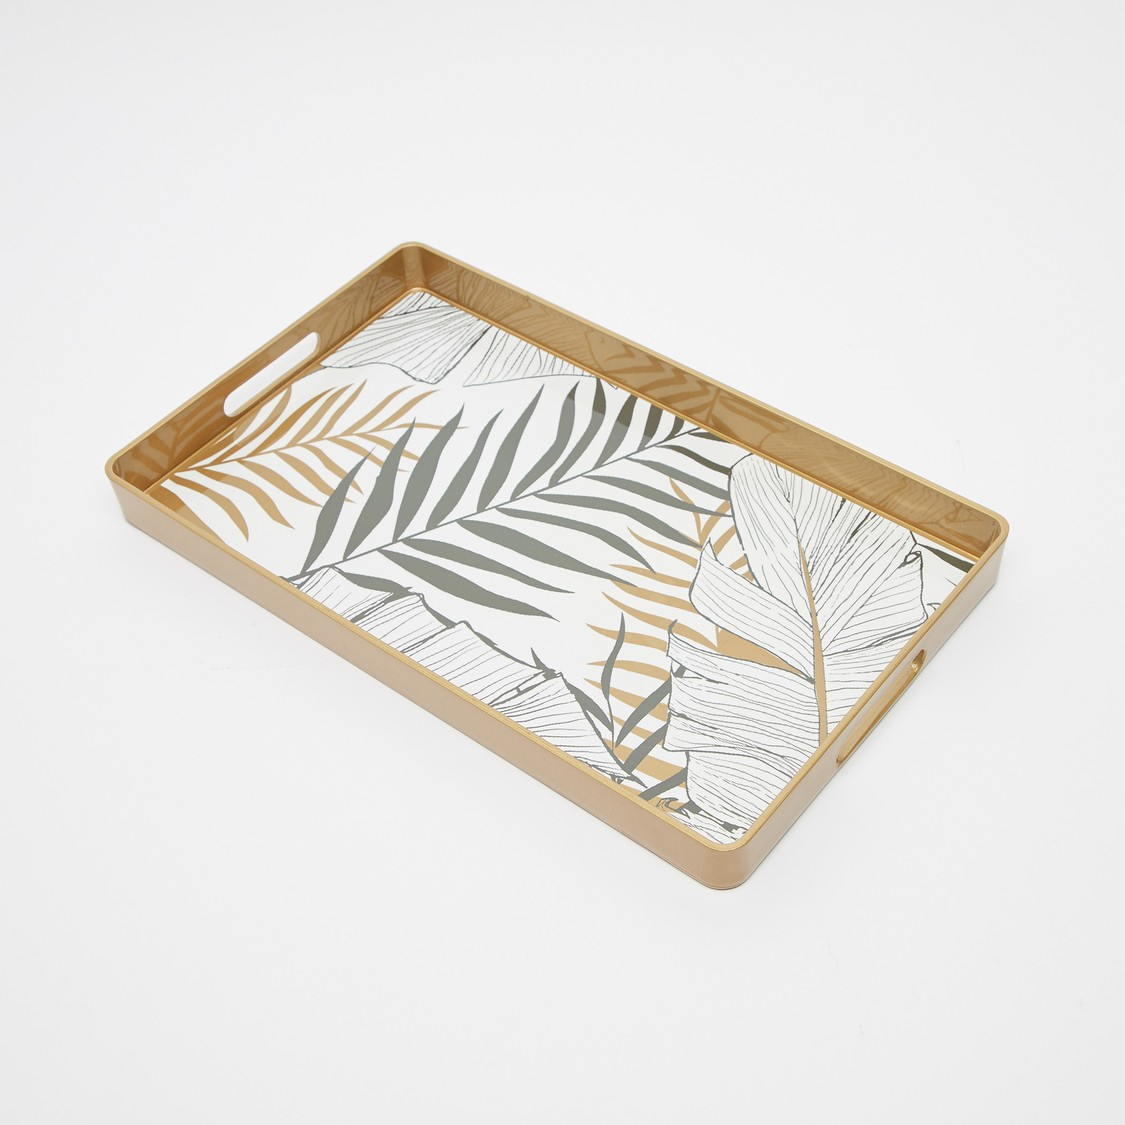 Printed Rectangular Serving Tray with Cutout Handles - 45.5x31x4 cms